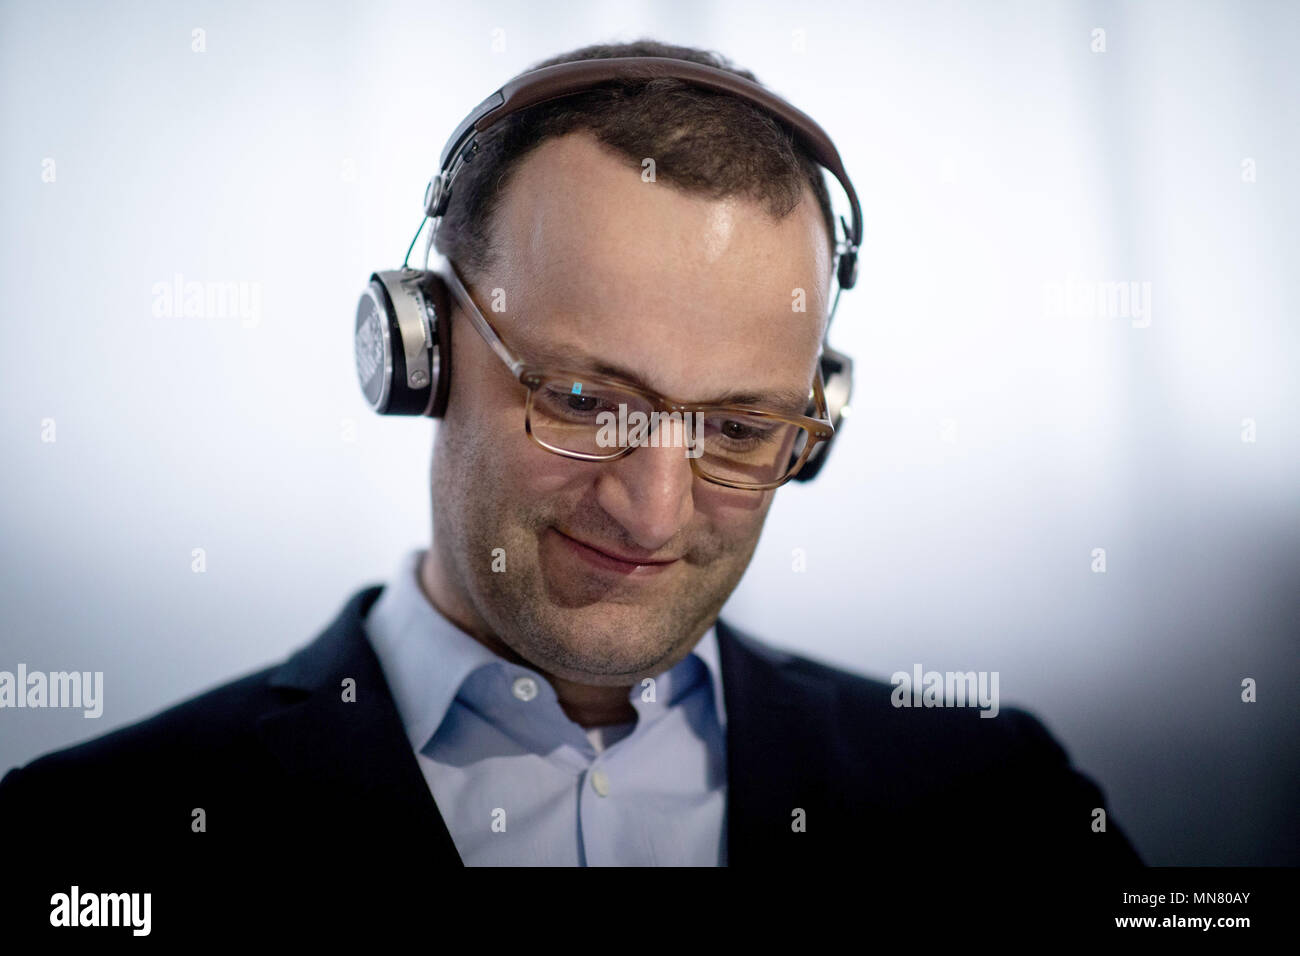 15 May 2018, Berlin, Germany: Jens Spahn of the Christian Democratic Union (CDU), Federal Health Minister, during a visit to the StartUp trade fair 'Cube Tech Fair', tests a headset for the early detection of a hearing impairment at the Mimi booth. Spahn participated in a discussion on 'Digitizing the Healthcare Industry through Blockchain and Artificial Intelligence.' Photo: Kay Nietfeld/dpa - Stock Image